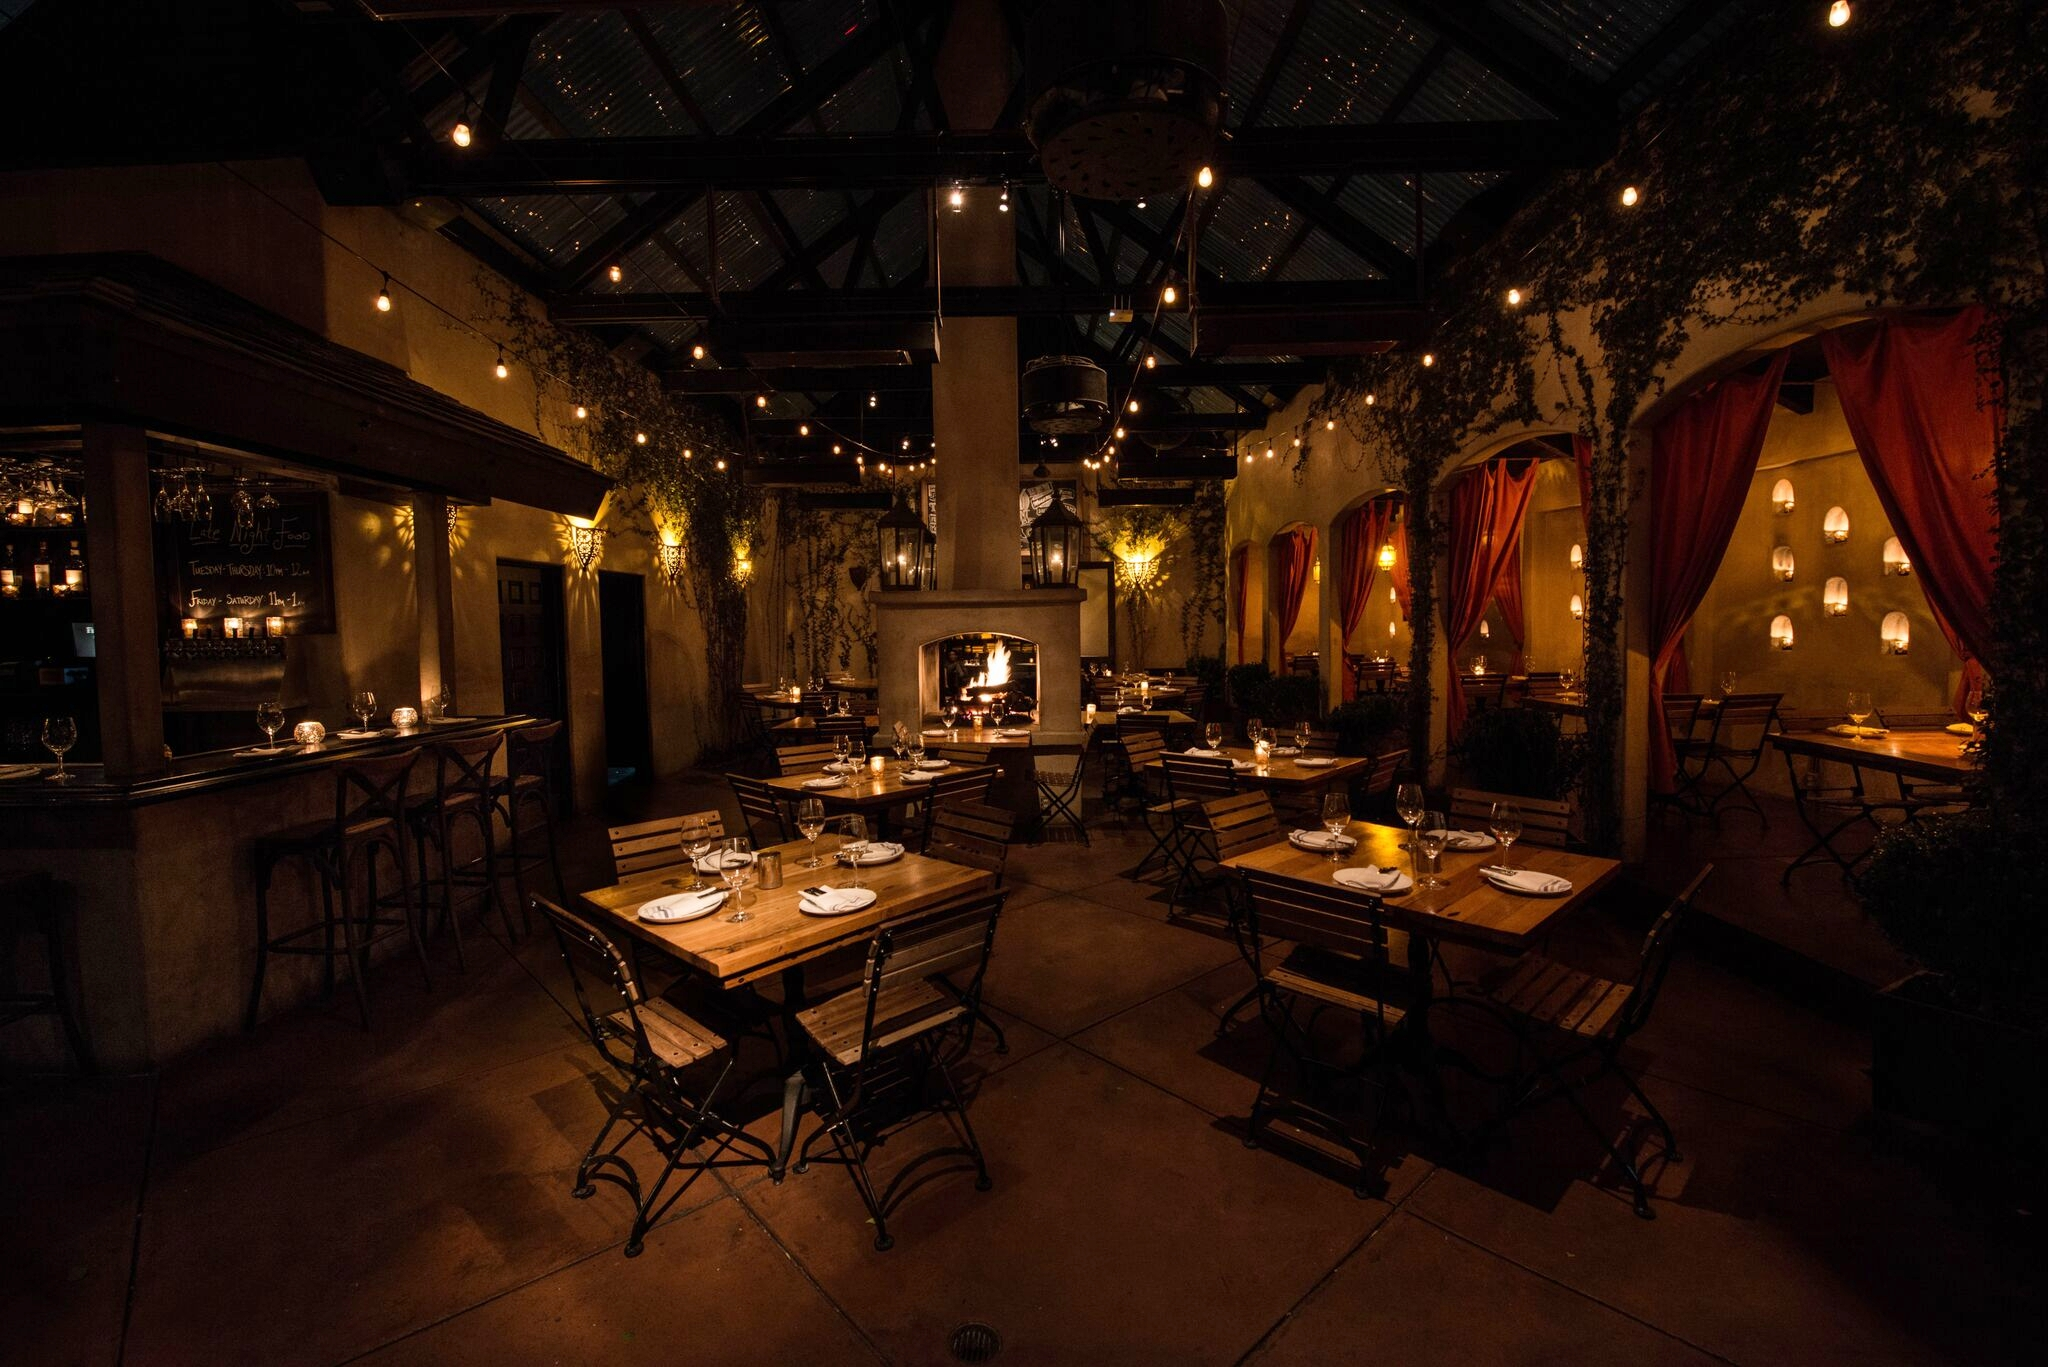 Experience the modern cuisine and romantic ambiance at Firefly during Winter DineLA in January